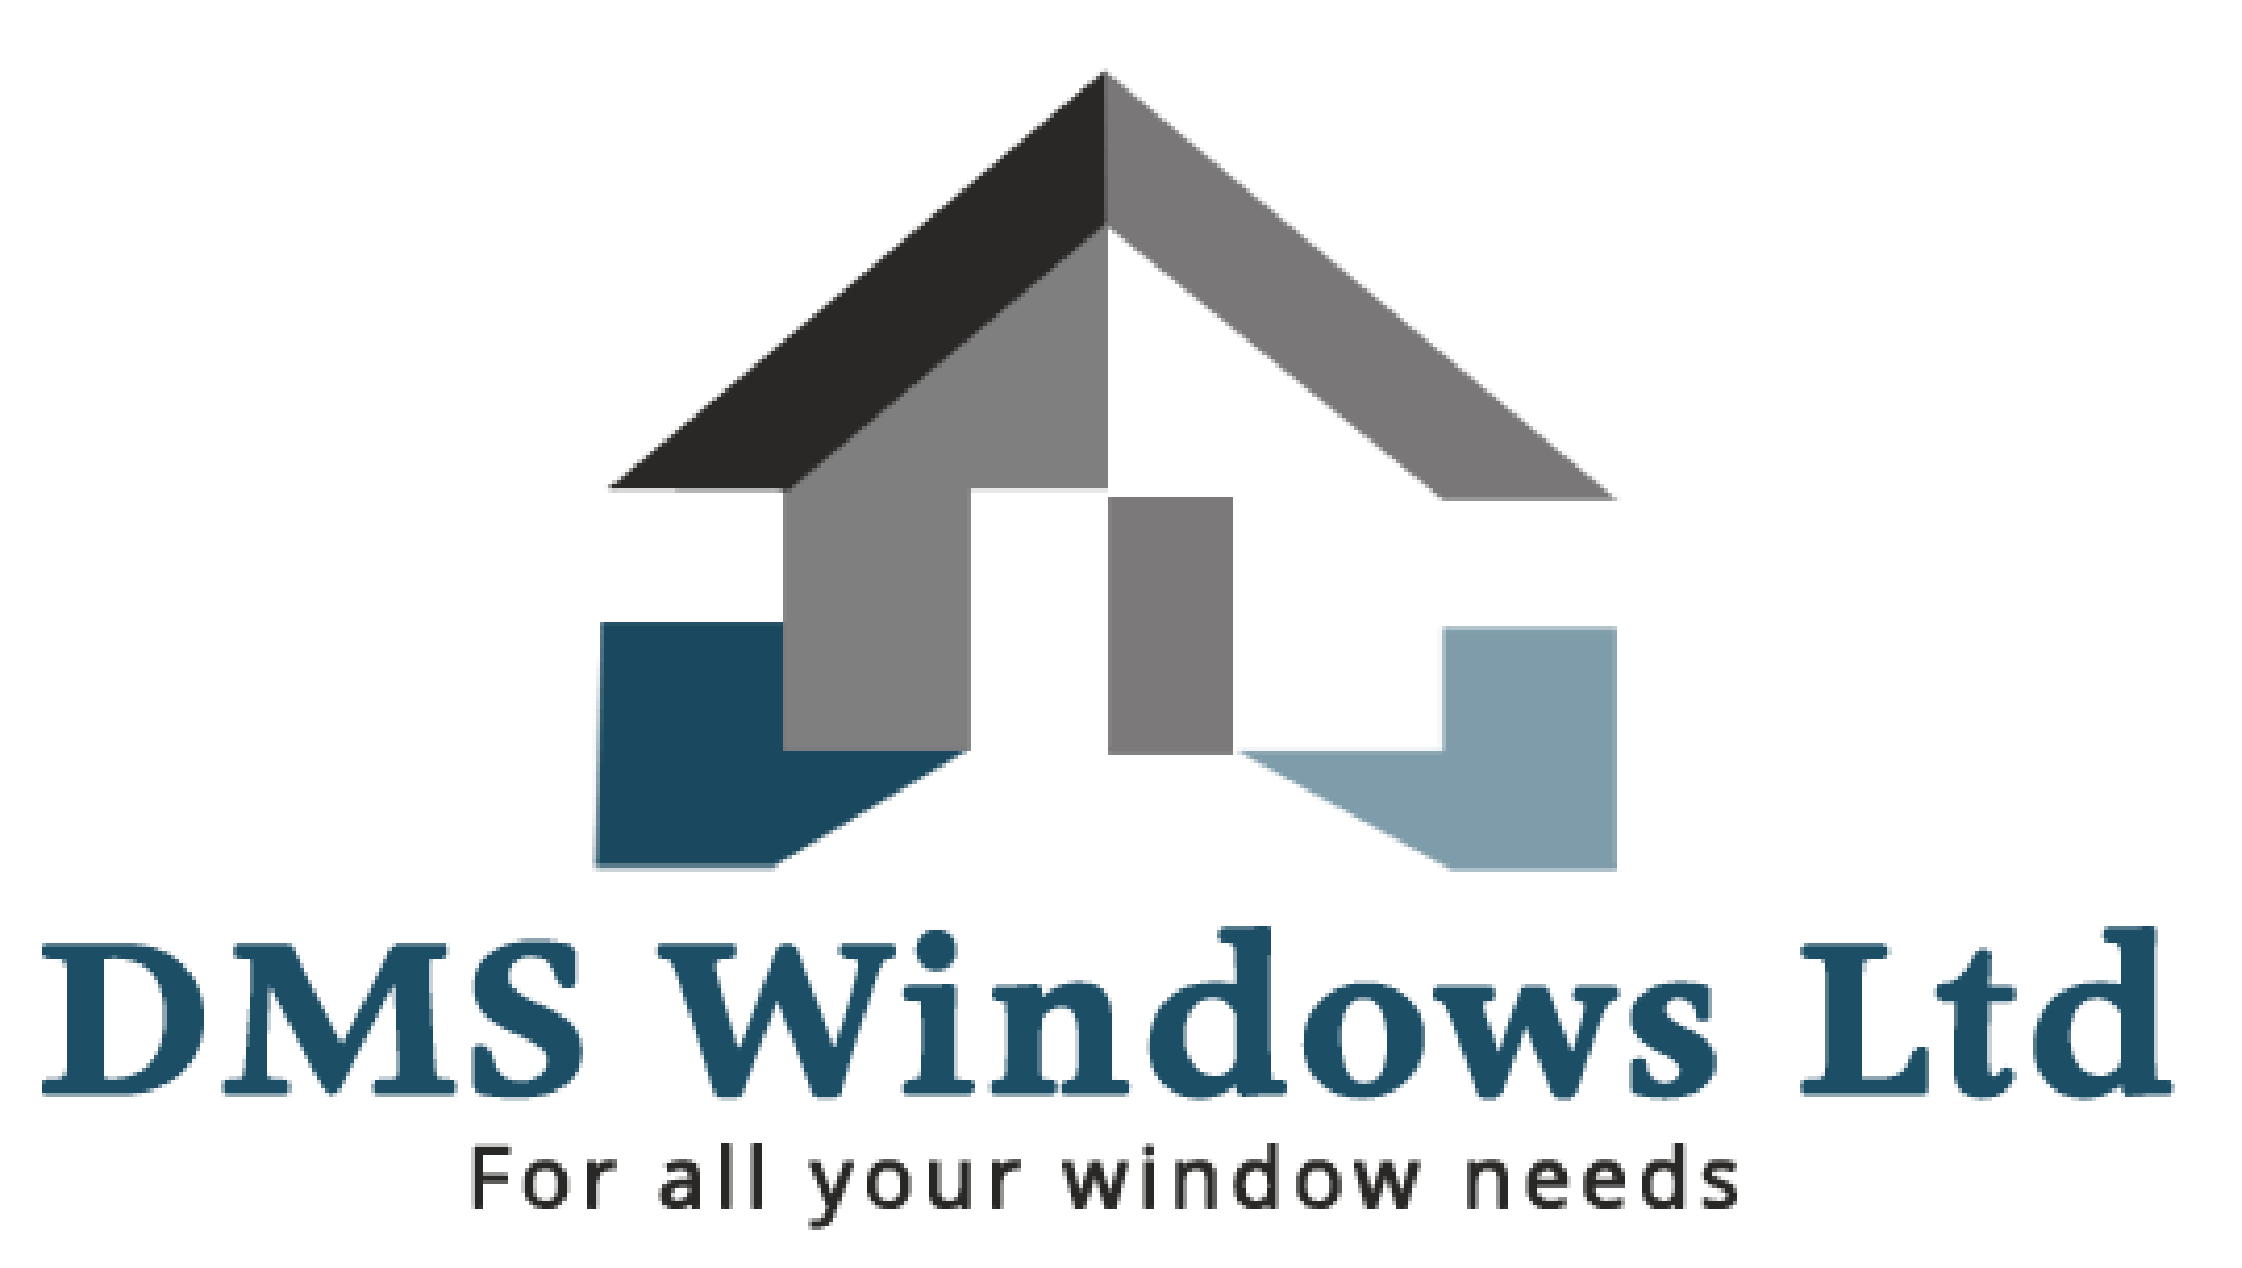 DMS Windows Ltd